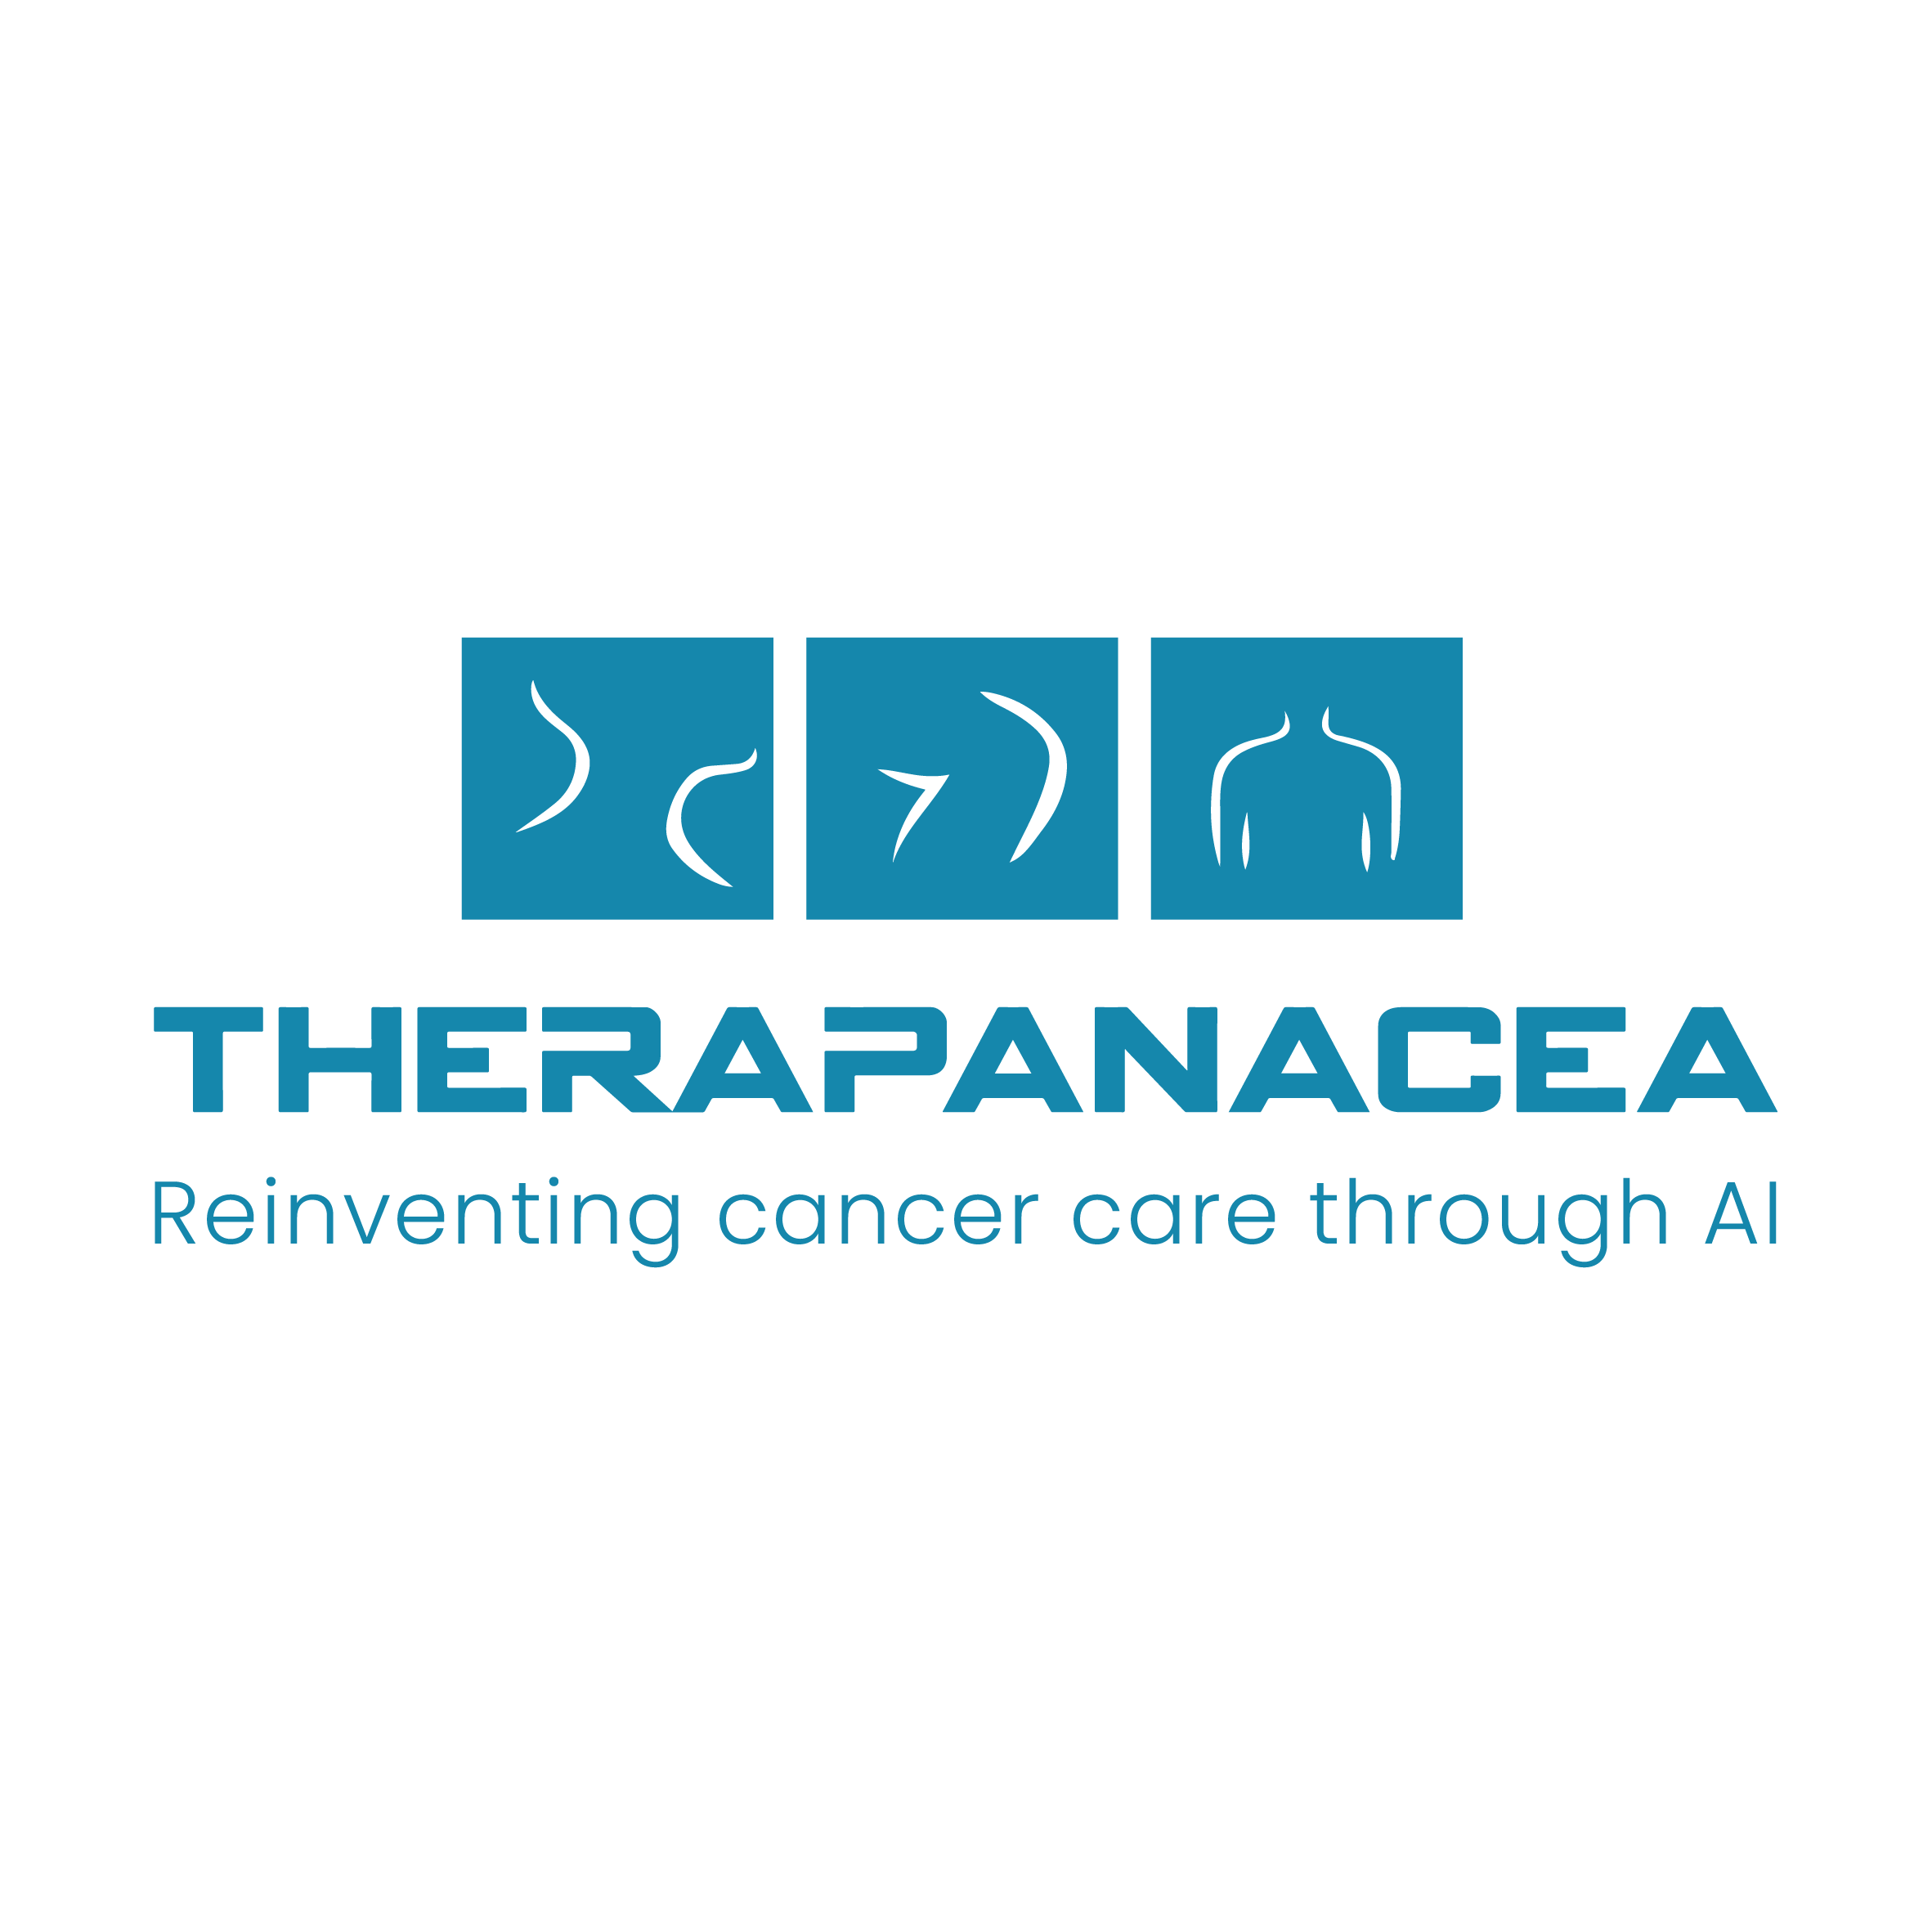 Therapanacea Reinventing cancer care through AI